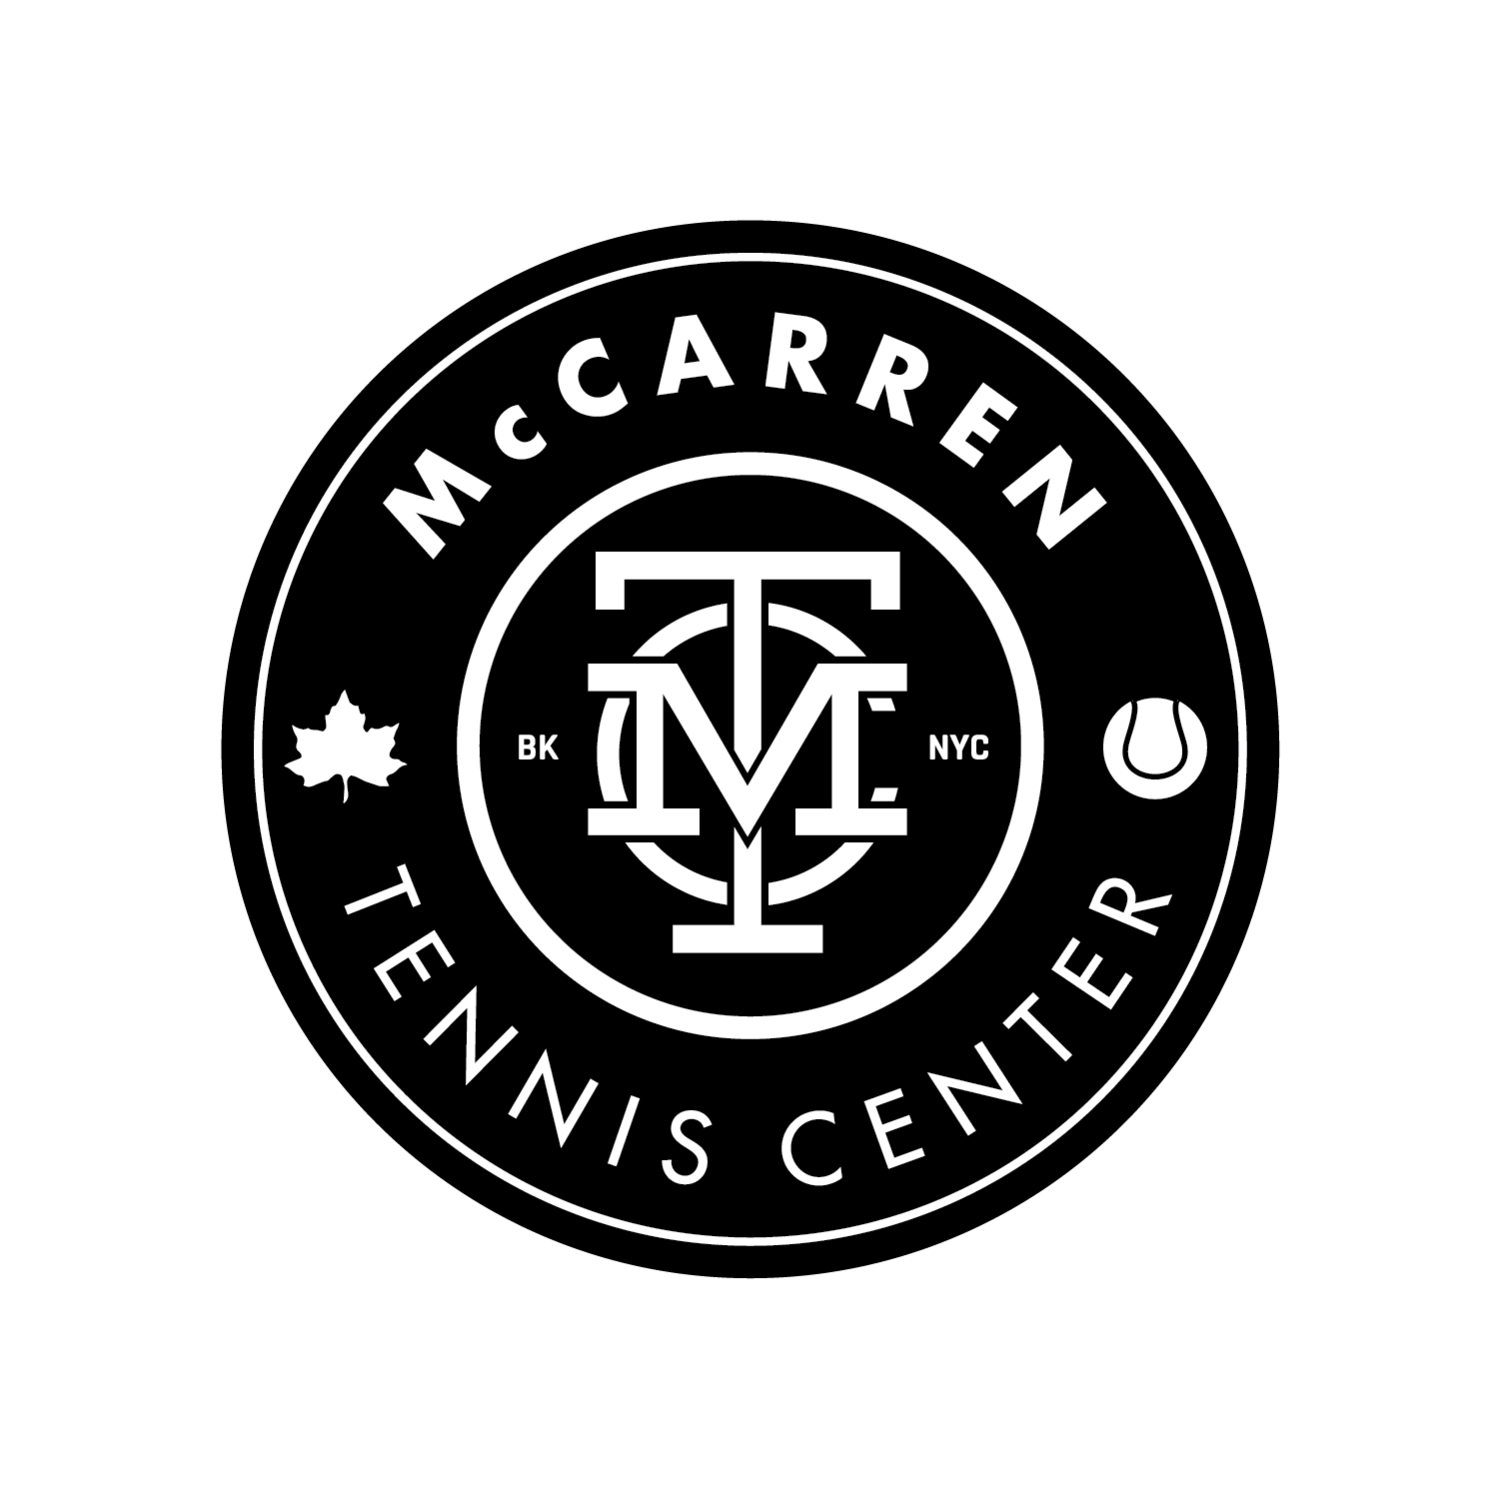 McCarren Tennis Center